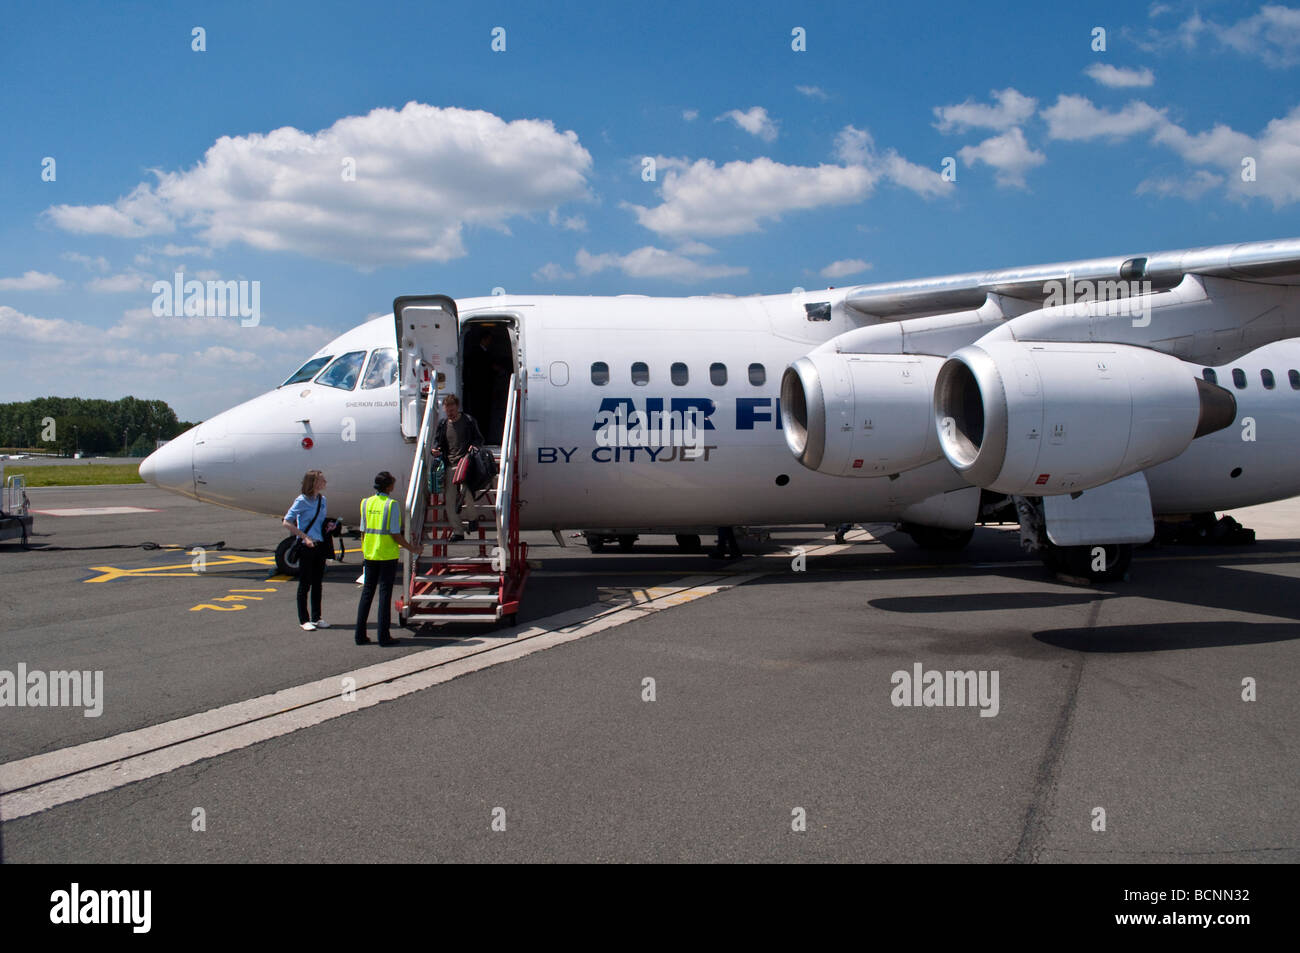 Air France small plane operated by CityJet - Stock Image